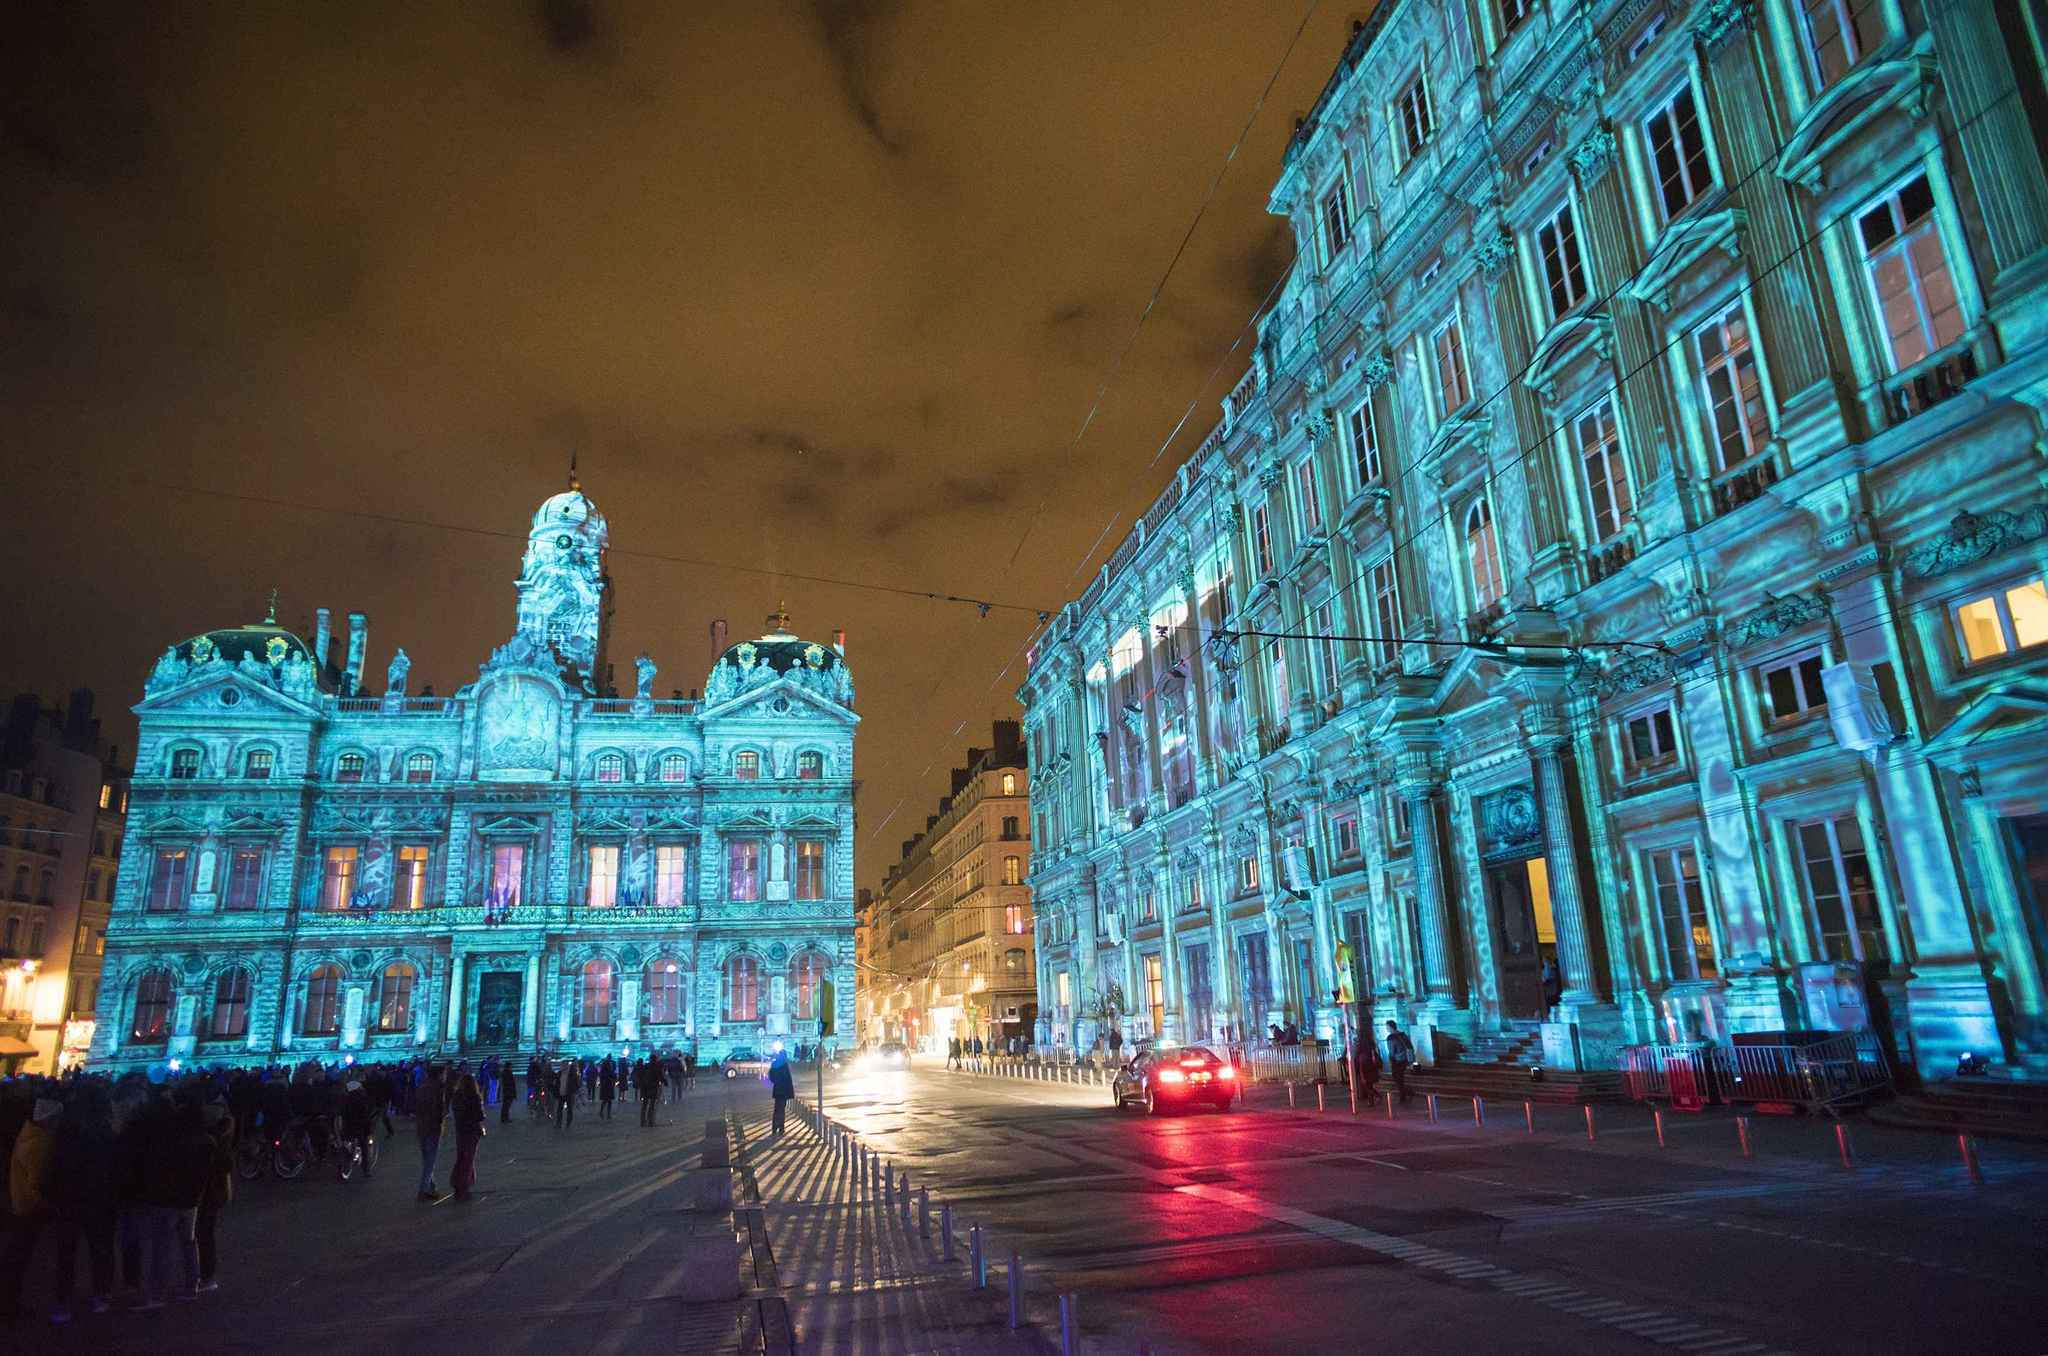 Pictures: Holiday lights from around the globe - Festival of Lights in central Lyon, France